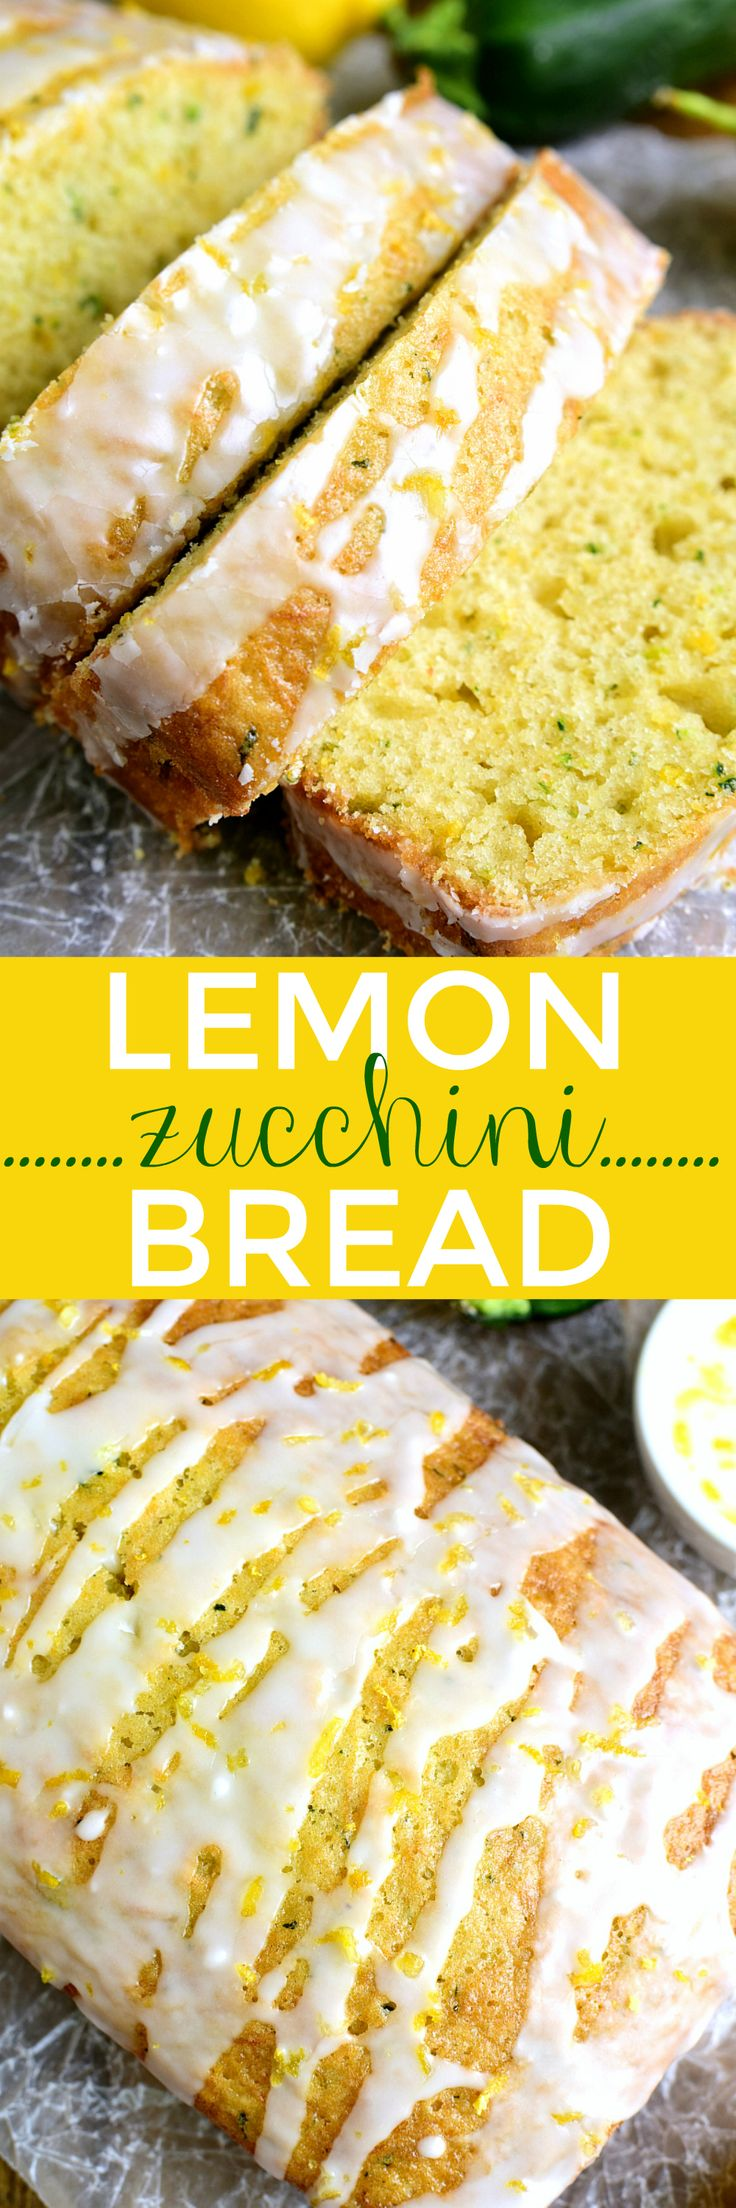 This Lemon Zucchini Bread combines two favorites in one delicious loaf of bread! Topped with a sweet lemony glaze, it's a great way to sneak in extra veggies and the BEST way to wake up! | Lemon Tree Dwelling